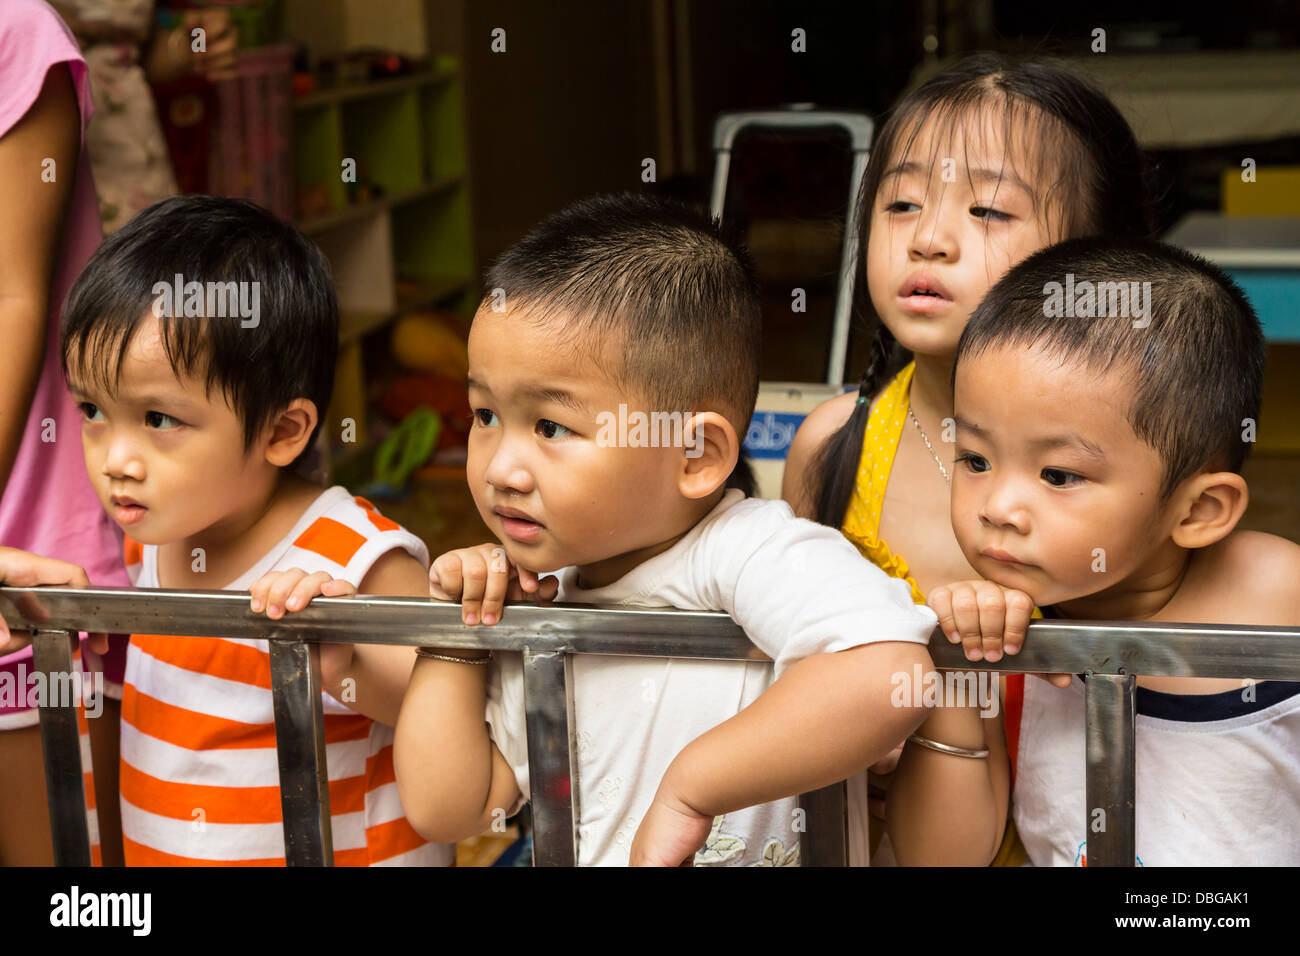 Young children at a daycare center in Saigon, Ho Chi Minh City, Vietnam, Asia. Stock Photo